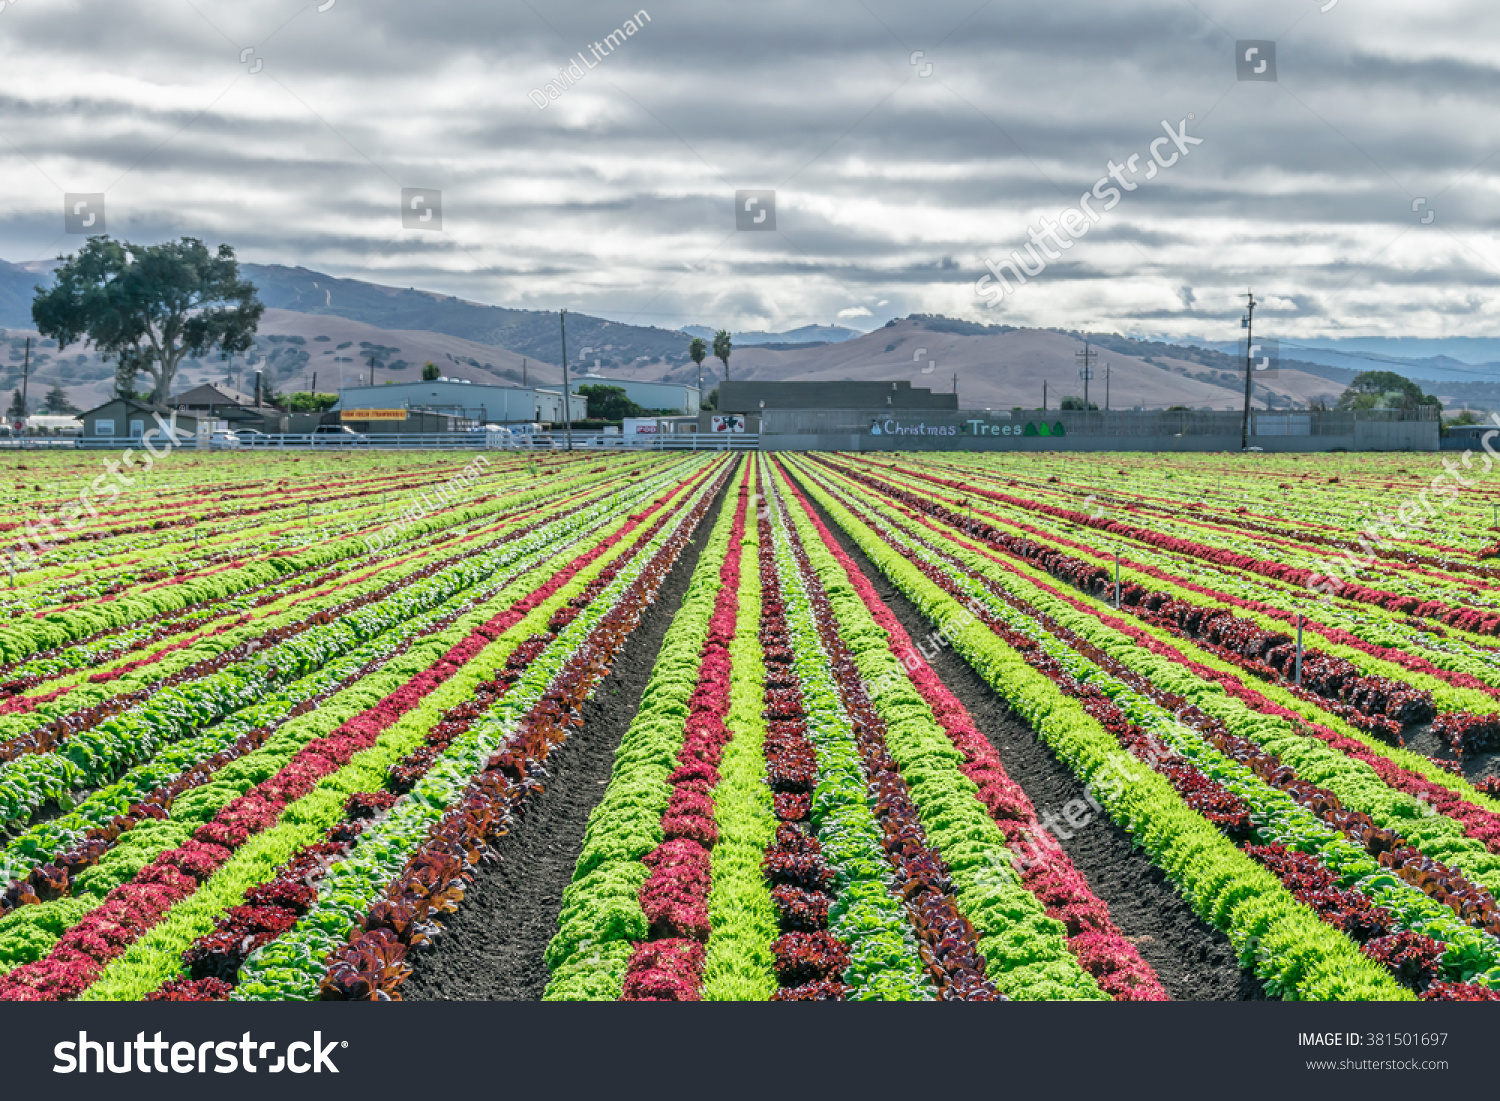 Salinas Valley agriculture: A colorful rainbow of agricultural fields of crops (lettuce plants), including mixed green, red, purple varieties, grow in rows in Central California (United States).